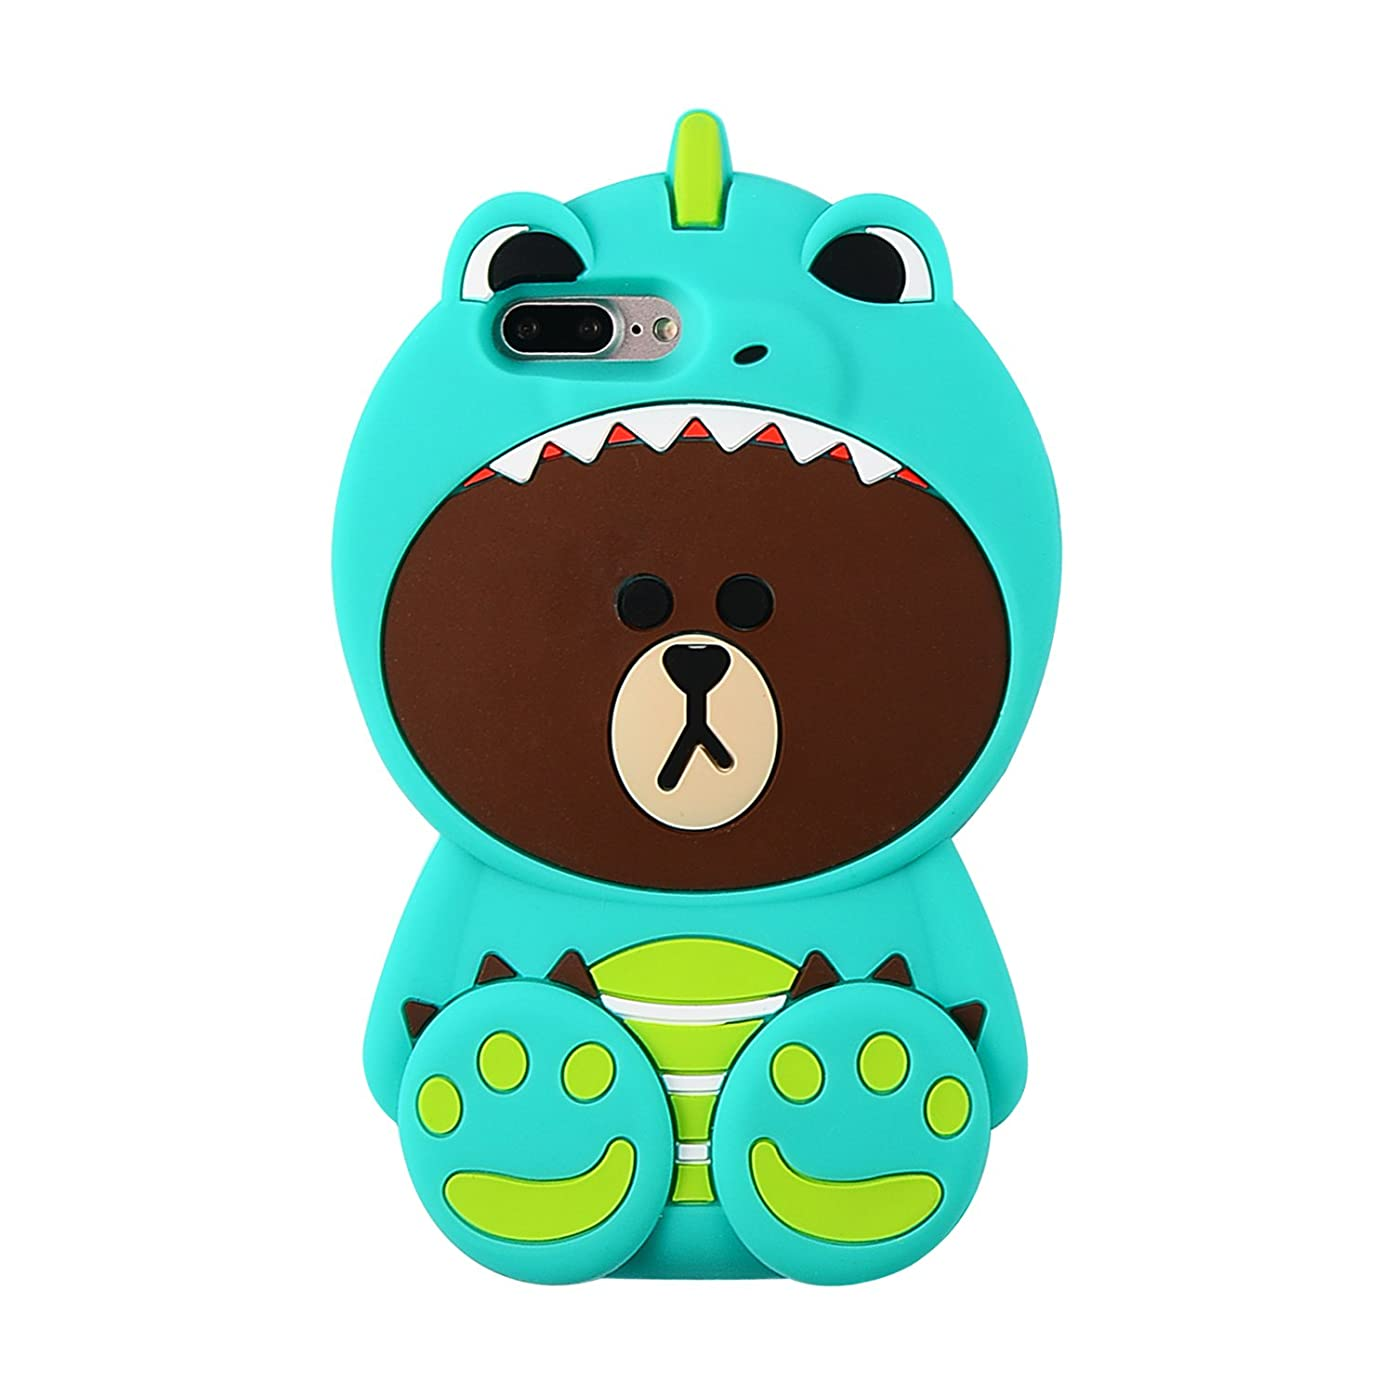 Artbling Case for iPhone 7 8 Silicone 3D Cartoon Animal Cover, Kids Girls Cool Fun Lovely Cute Bear Cases,Kawaii Soft Gel Rubber Unique Character Fashion Protector for iPhone7 iPhone8 (Green Dinosaur)